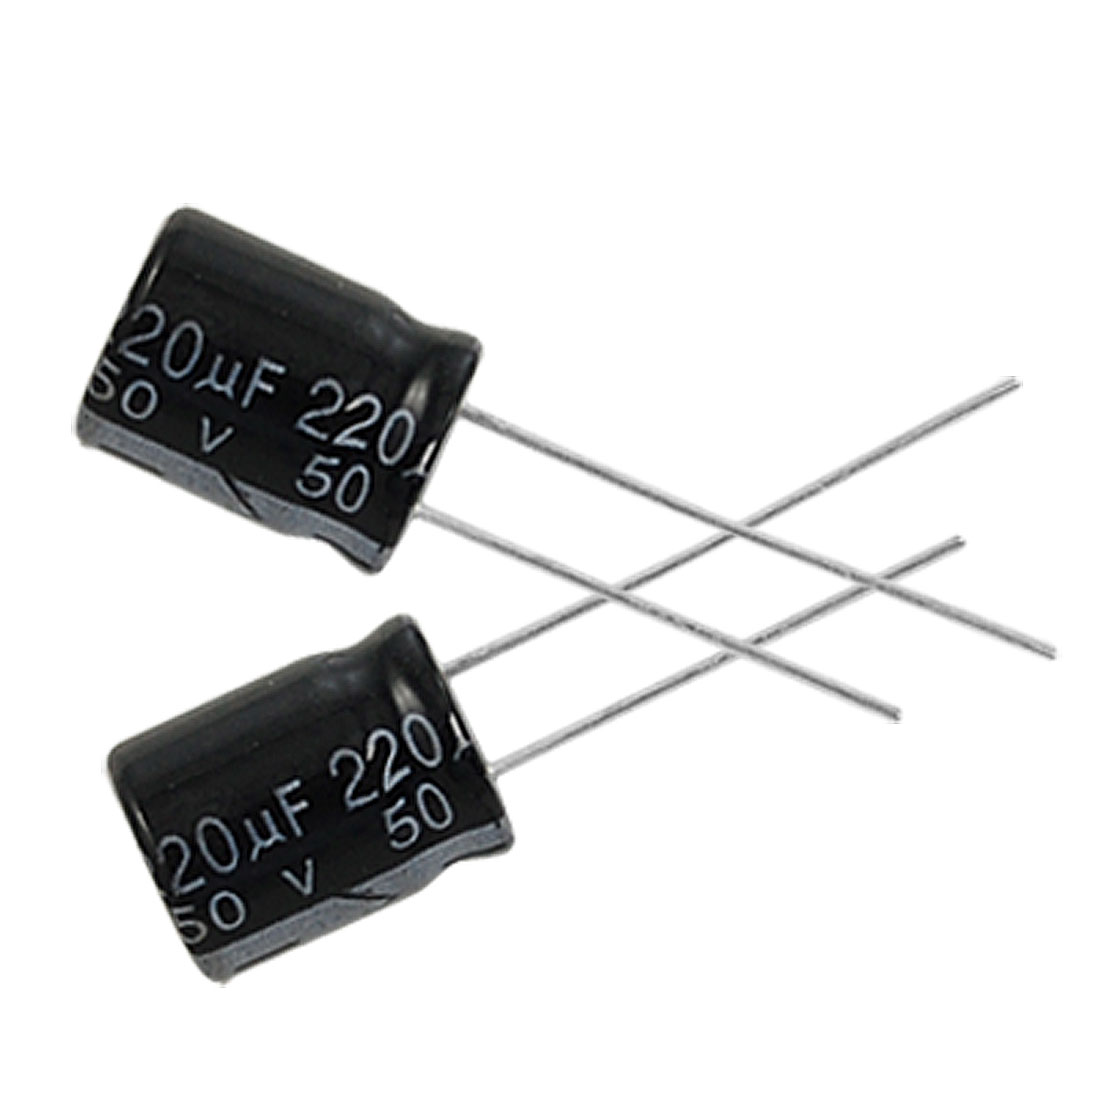 5 x 220uF 50V 105C Radial Electrolytic Capacitor 10x13mm